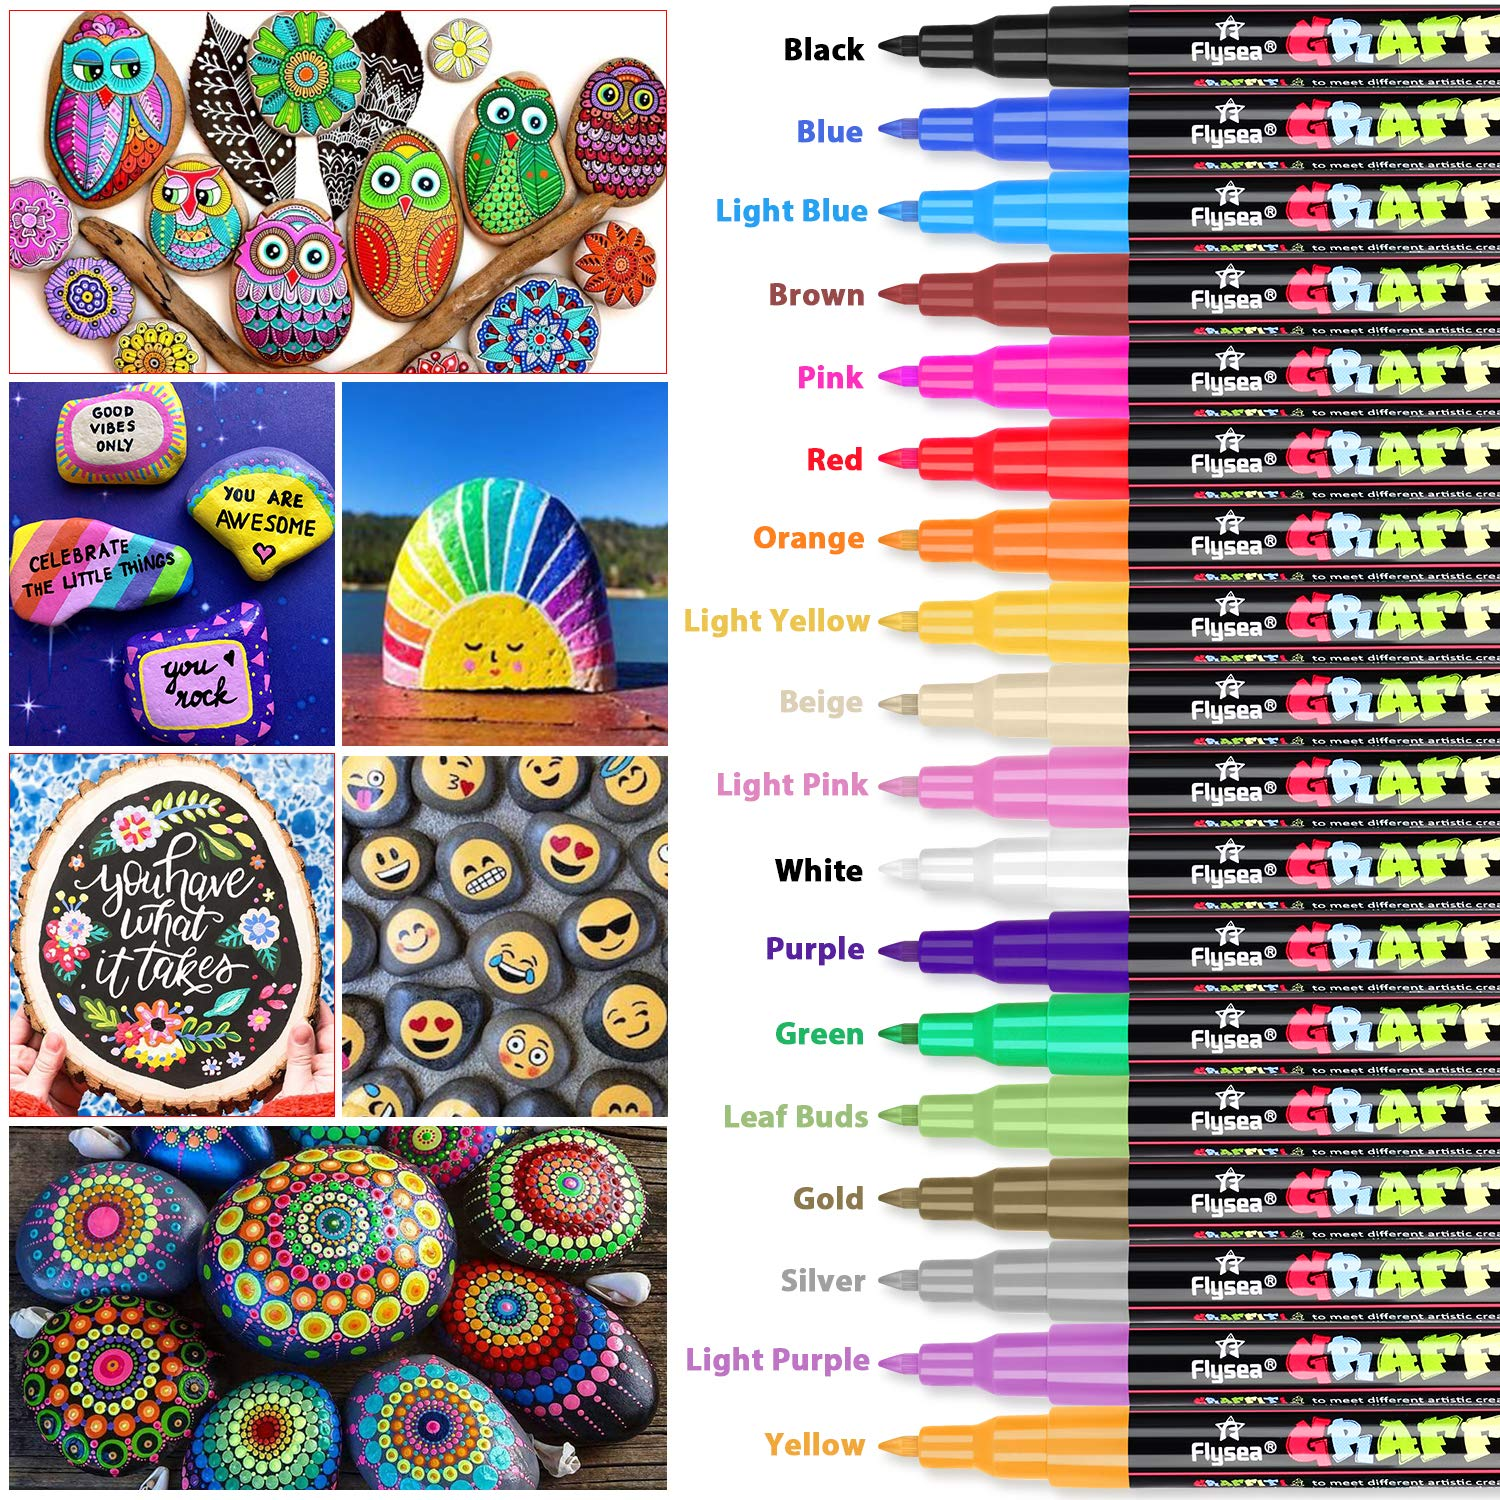 Ceramic Art Acrylic Paint Pens YITHINC Set of 18 Marker Pens for Rock Painting